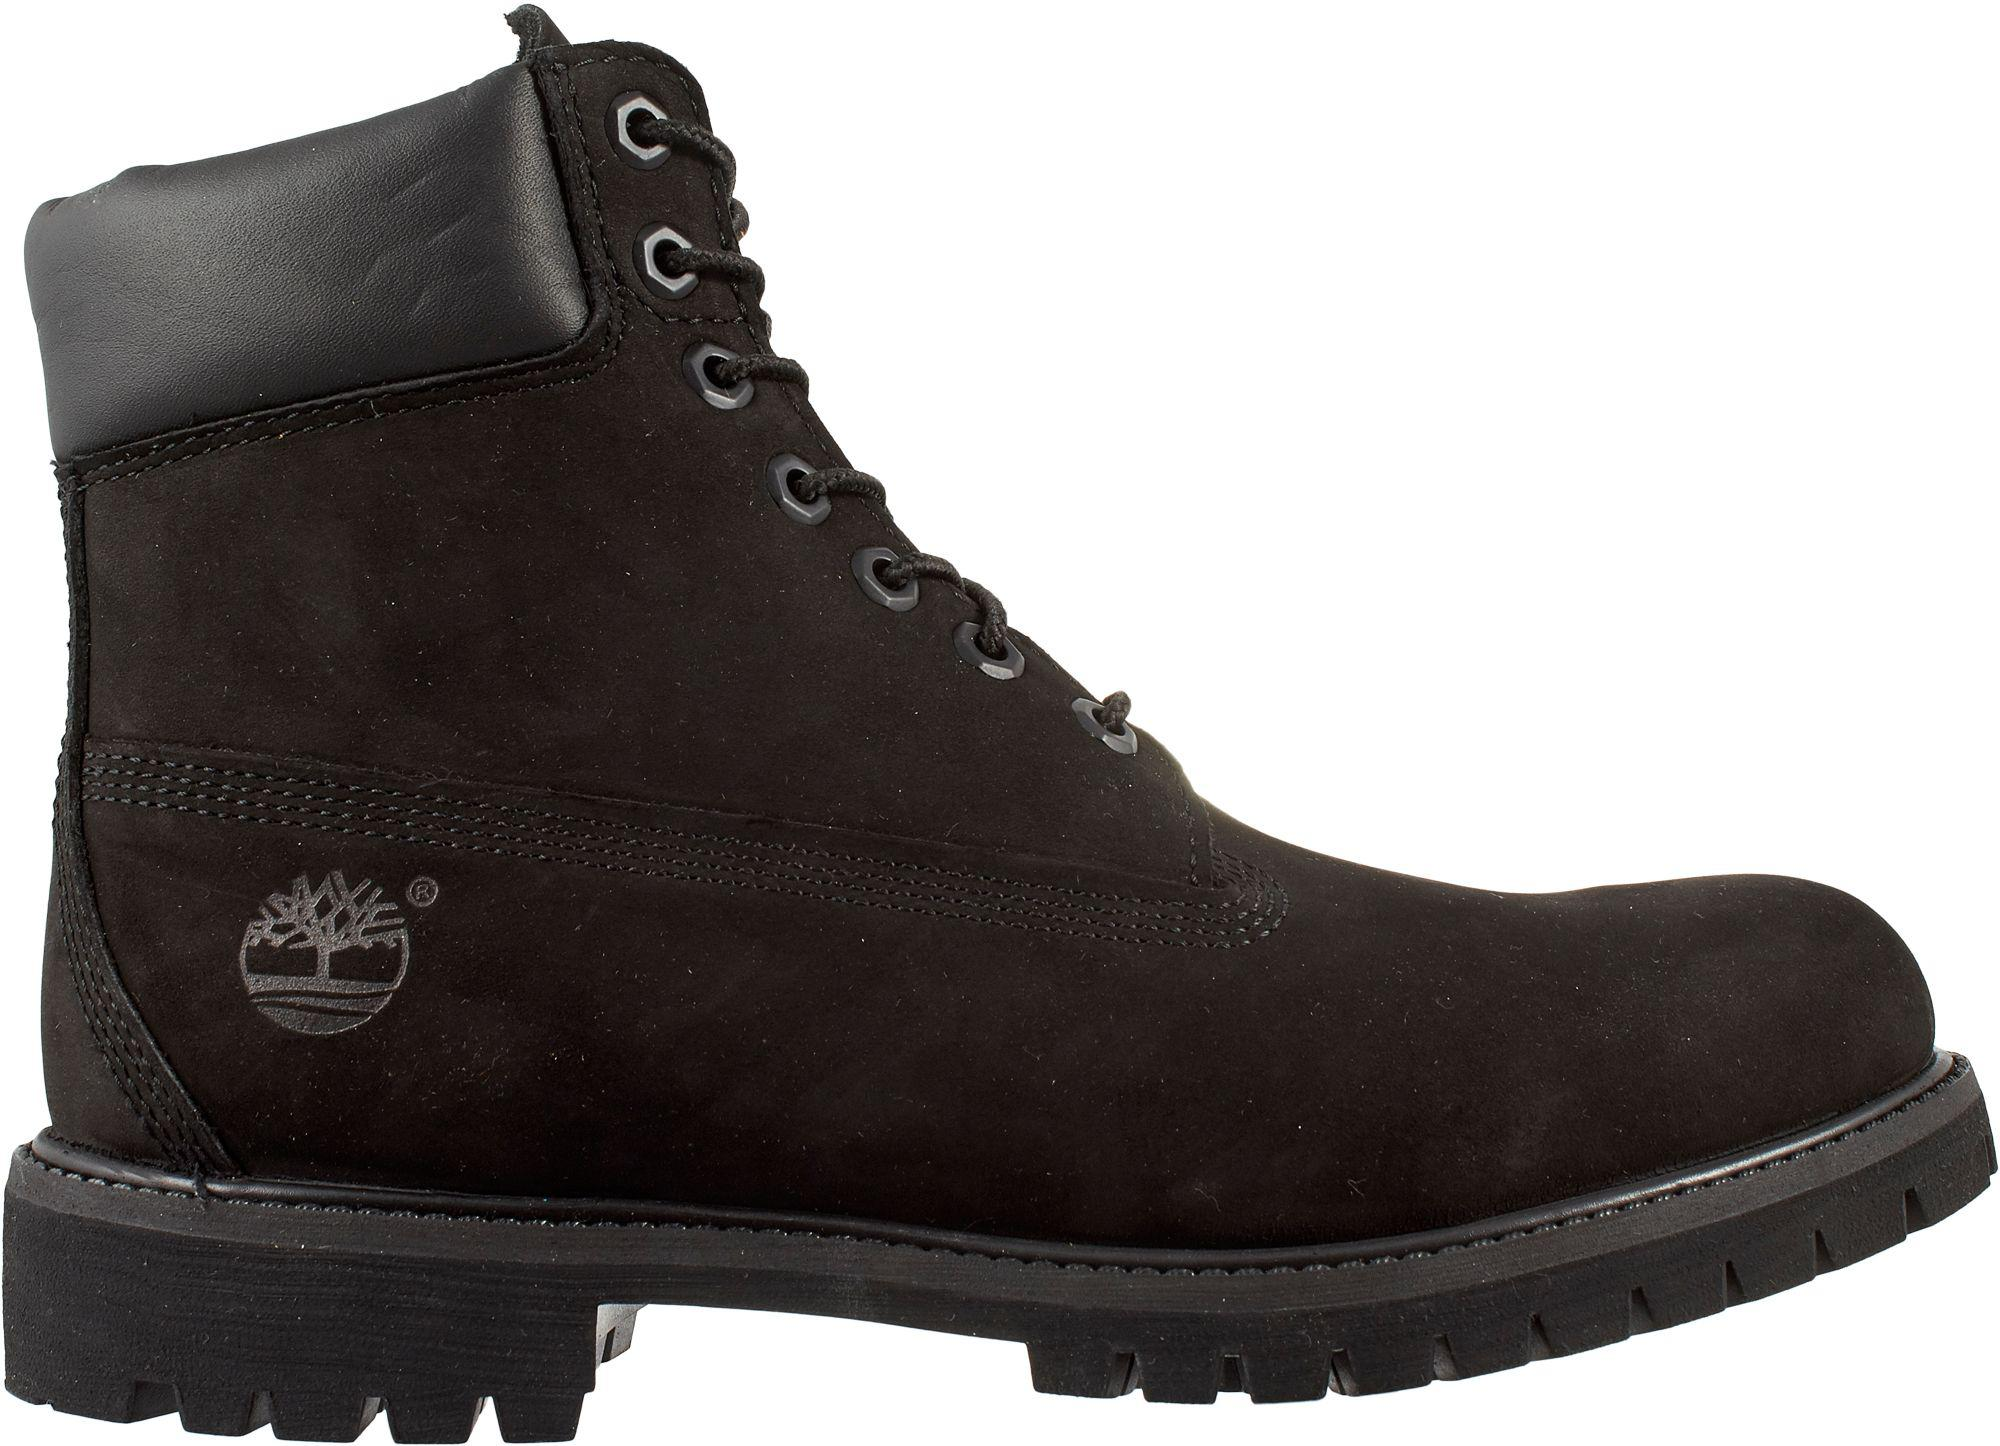 90fb8682ccdca Lyst - Timberland 6'' Premium Waterproof Casual Boots in Black for Men